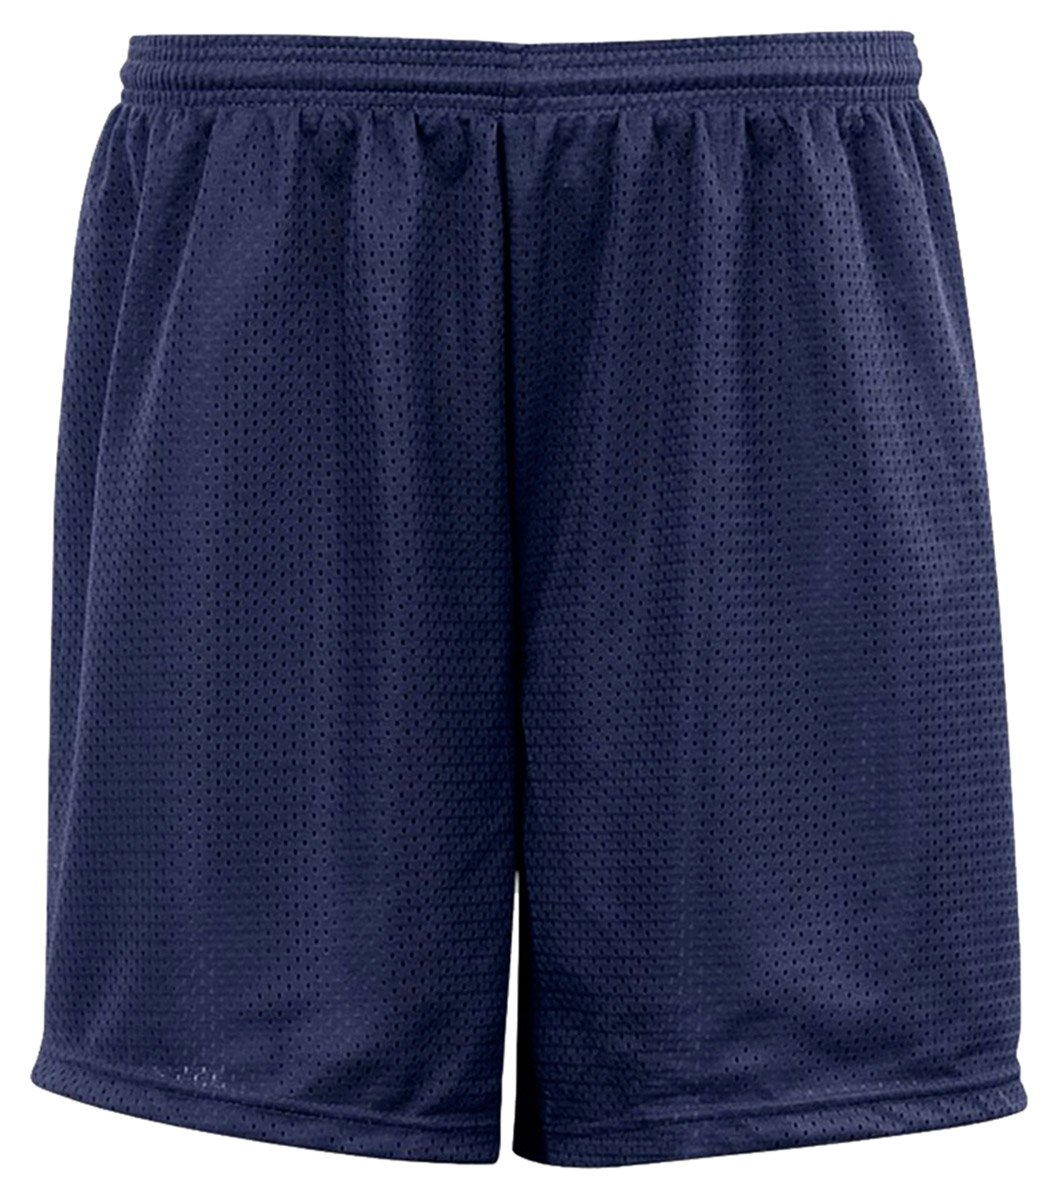 C2 Sport - Mesh Youth Shorts - 5209 - S - Navy by C2 Sport